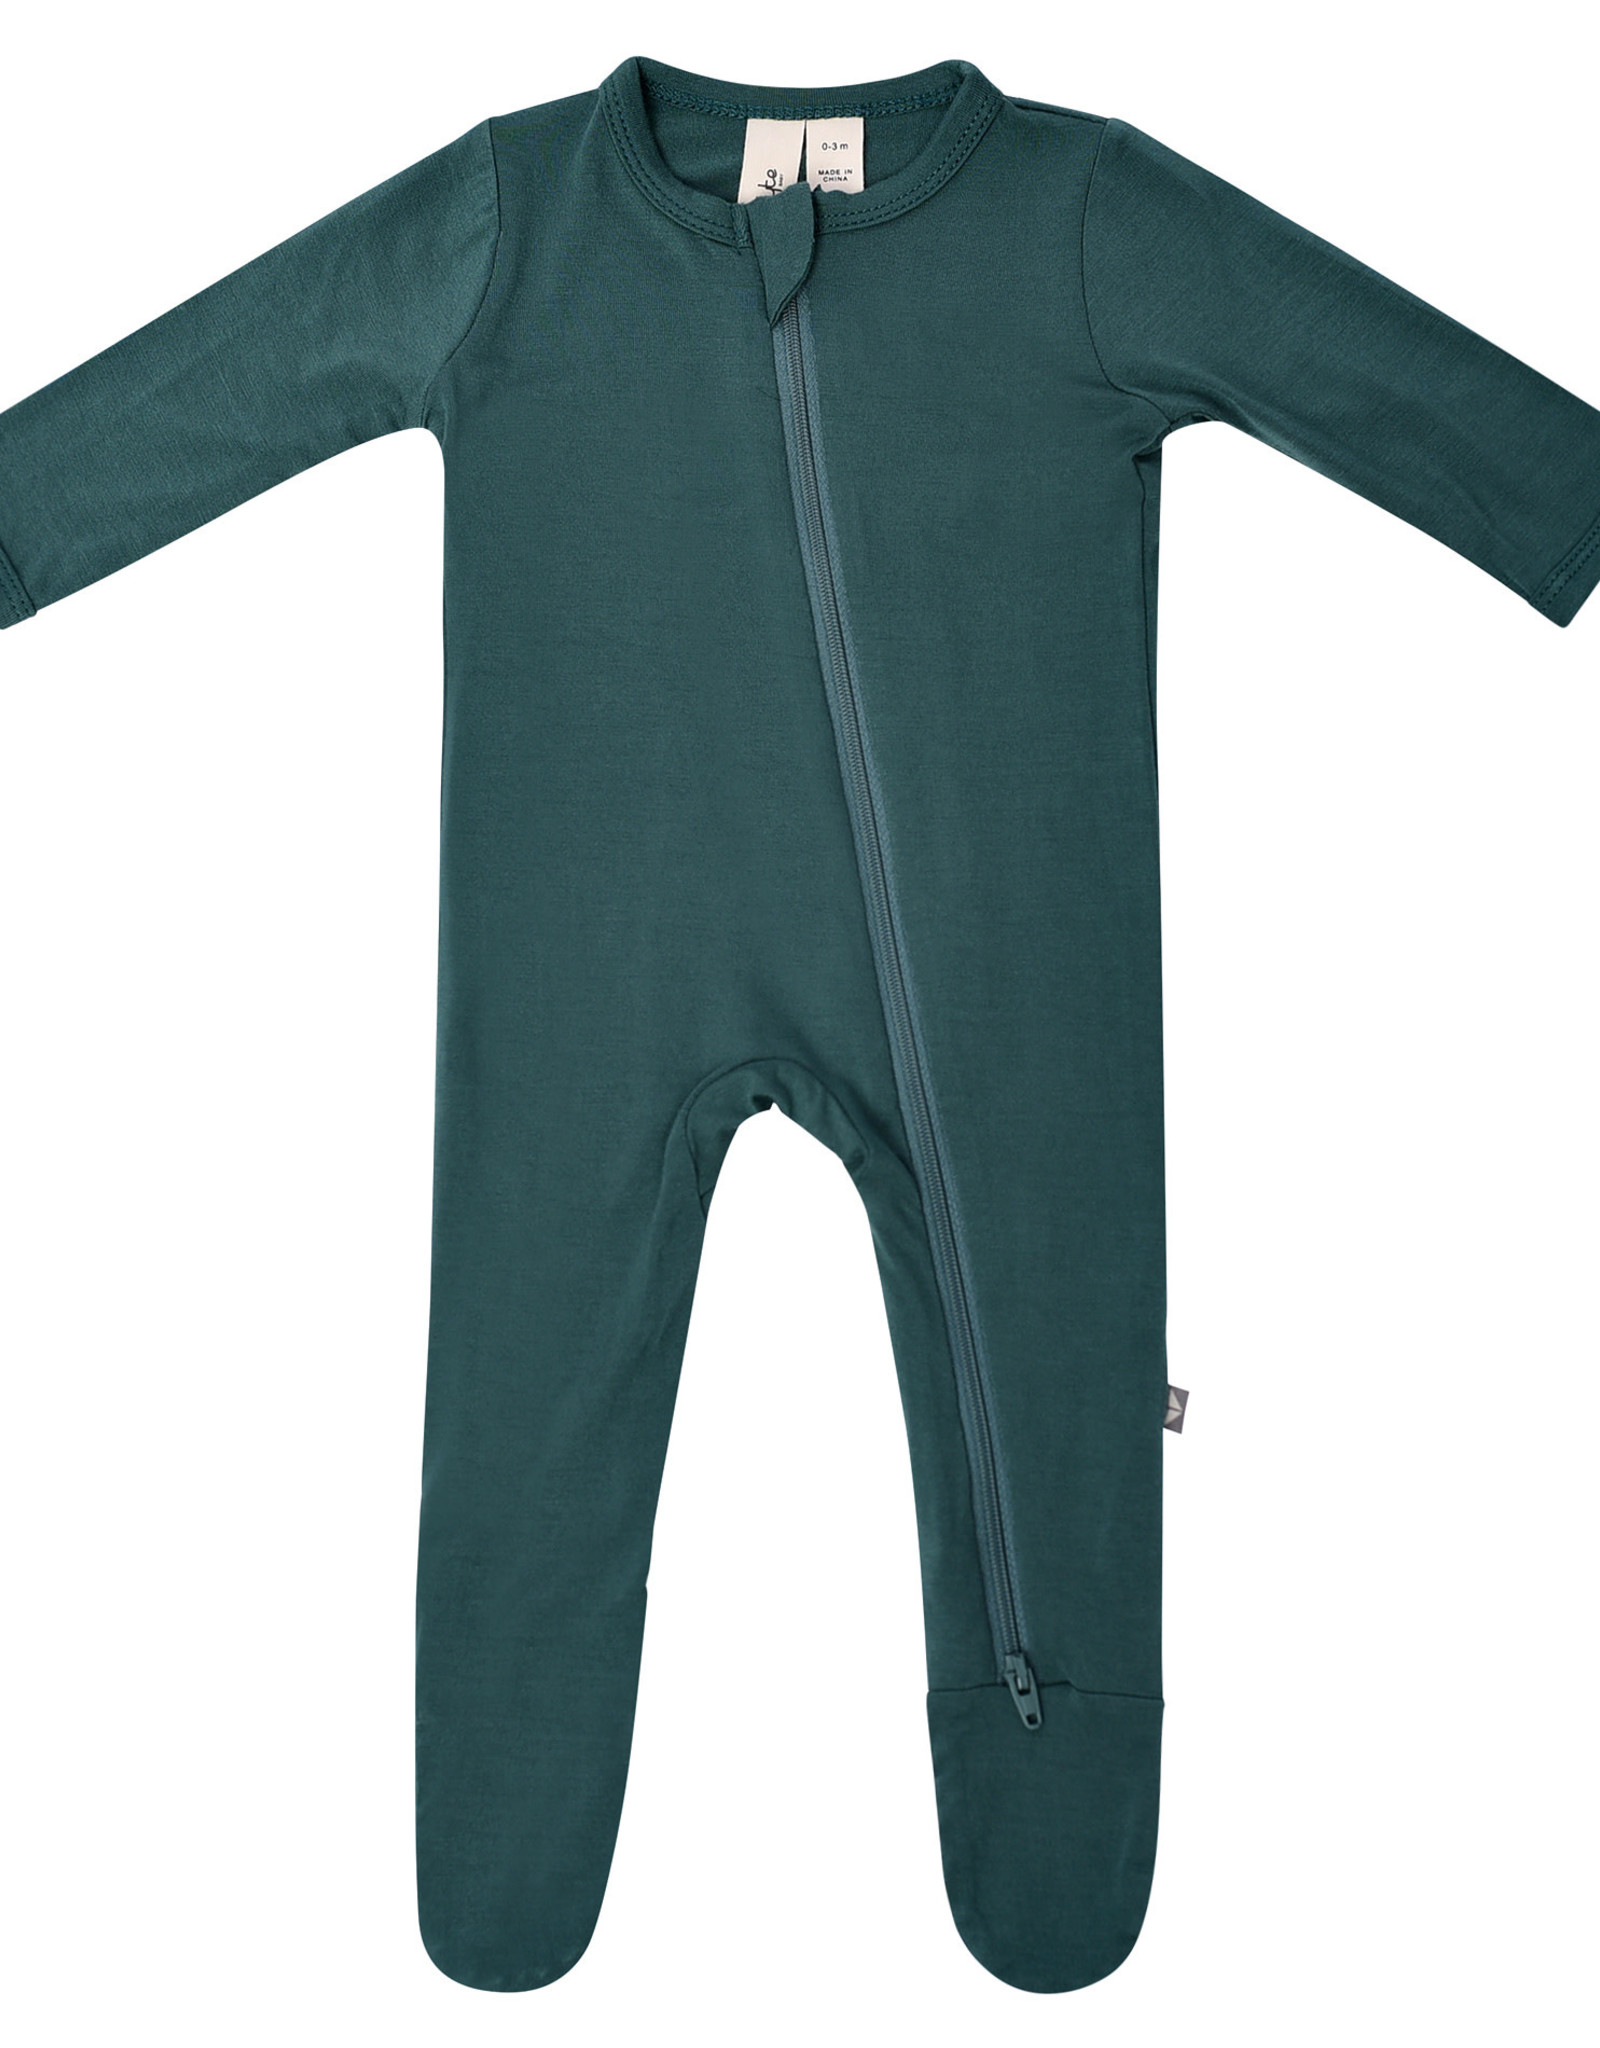 Kyte Baby zippered footie- emerald